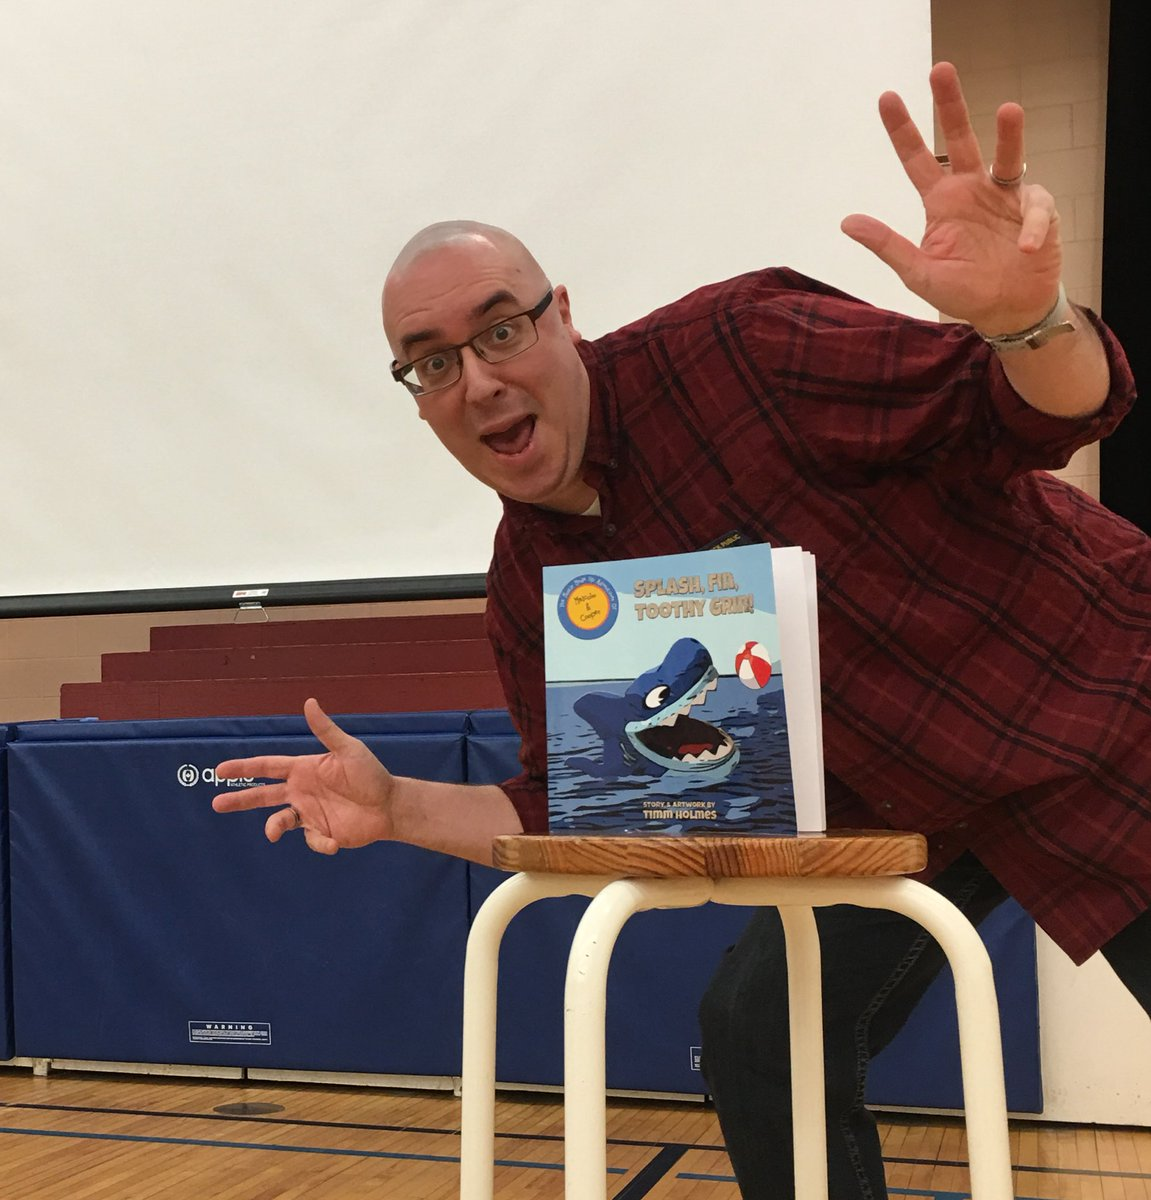 Interactive Author Timm Holmes